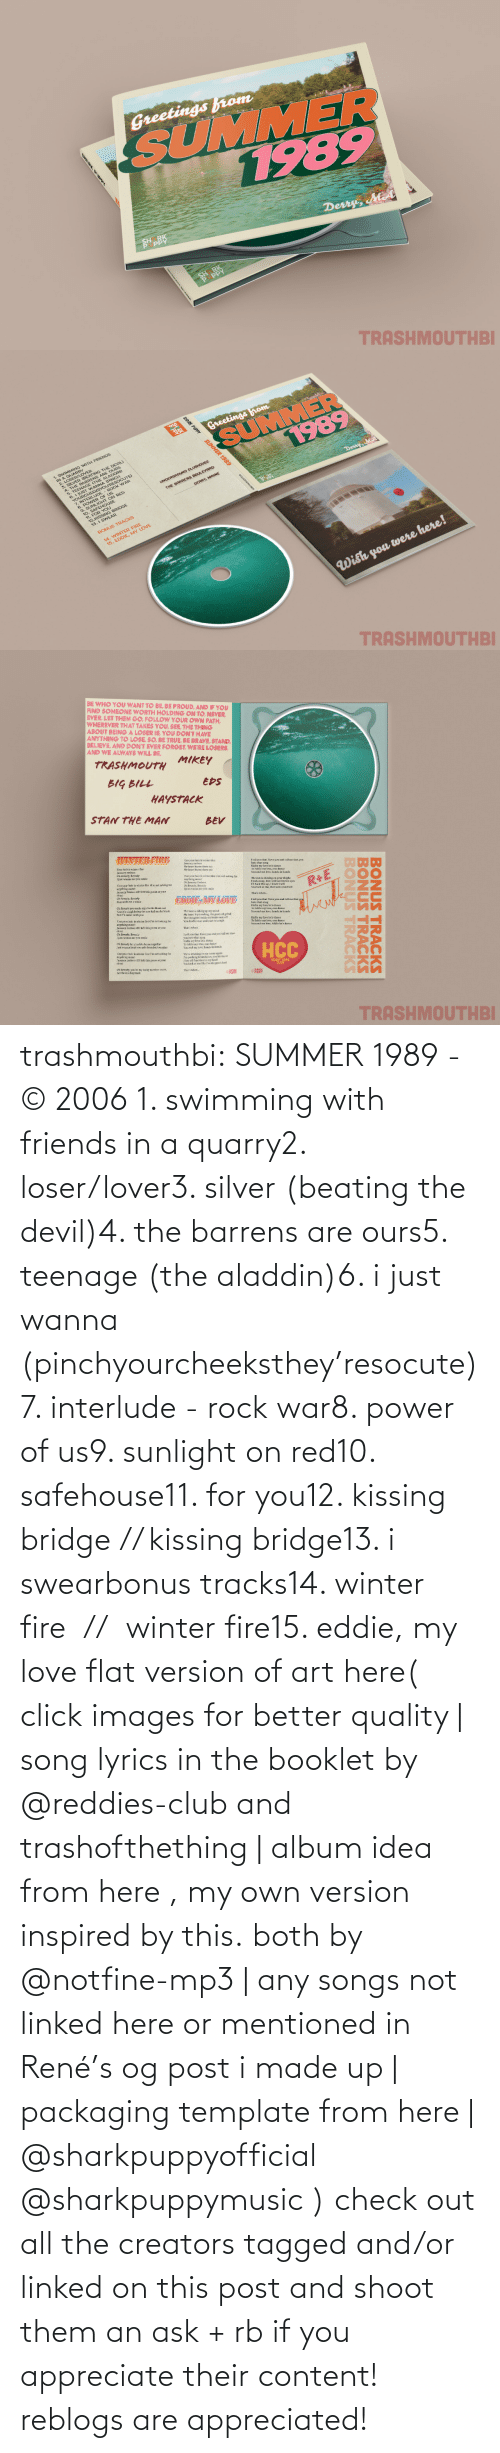 Eddie: trashmouthbi: SUMMER 1989 - © 2006 1. swimming with friends in a quarry2. loser/lover3. silver (beating the devil)4. the barrens are ours5. teenage (the aladdin)6. i just wanna (pinchyourcheeksthey'resocute)7. interlude - rock war8. power of us9. sunlight on red10. safehouse11. for you12. kissing bridge // kissing bridge13. i swearbonus tracks14. winter fire  //  winter fire15. eddie, my love flat version of art here( click images for better quality | song lyrics in the booklet by @reddies-club​ and trashofthething | album idea from here , my own version inspired by this. both by @notfine-mp3​ | any songs not linked here or mentioned in René's og post i made up | packaging template from here | @sharkpuppyofficial​ @sharkpuppymusic​ ) check out all the creators tagged and/or linked on this post and shoot them an ask + rb if you appreciate their content! reblogs are appreciated!